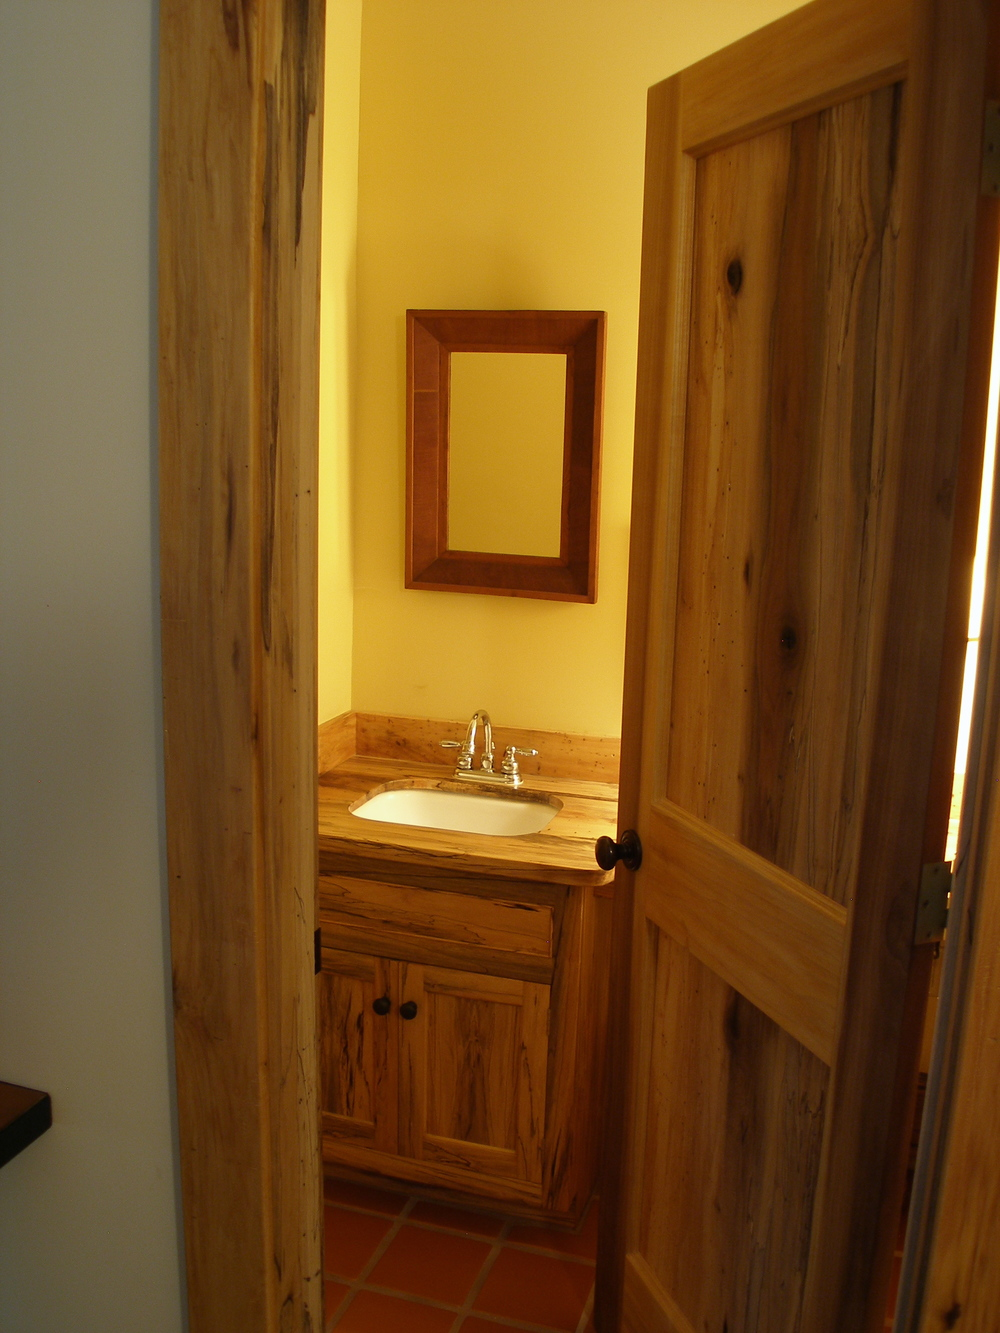 Spalted Poplar door and vanity cabinet in guest bath.